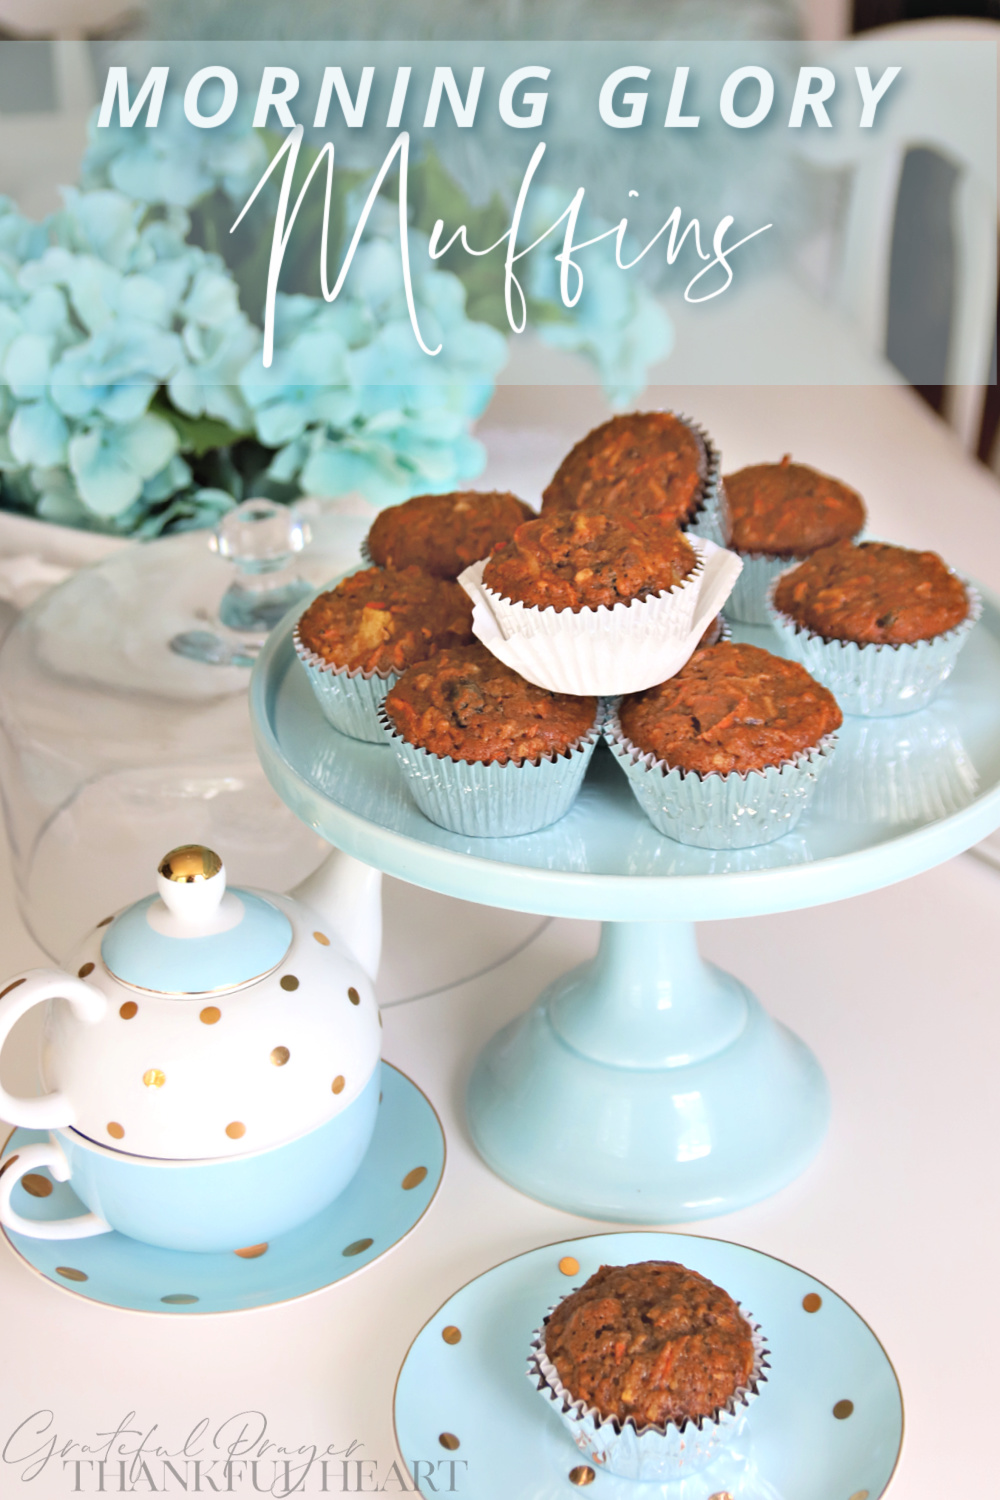 Morning glory muffins, with healthy ingredients like carrots, apple, pineapple, coconut, raisins and pecans for a delicious snack.